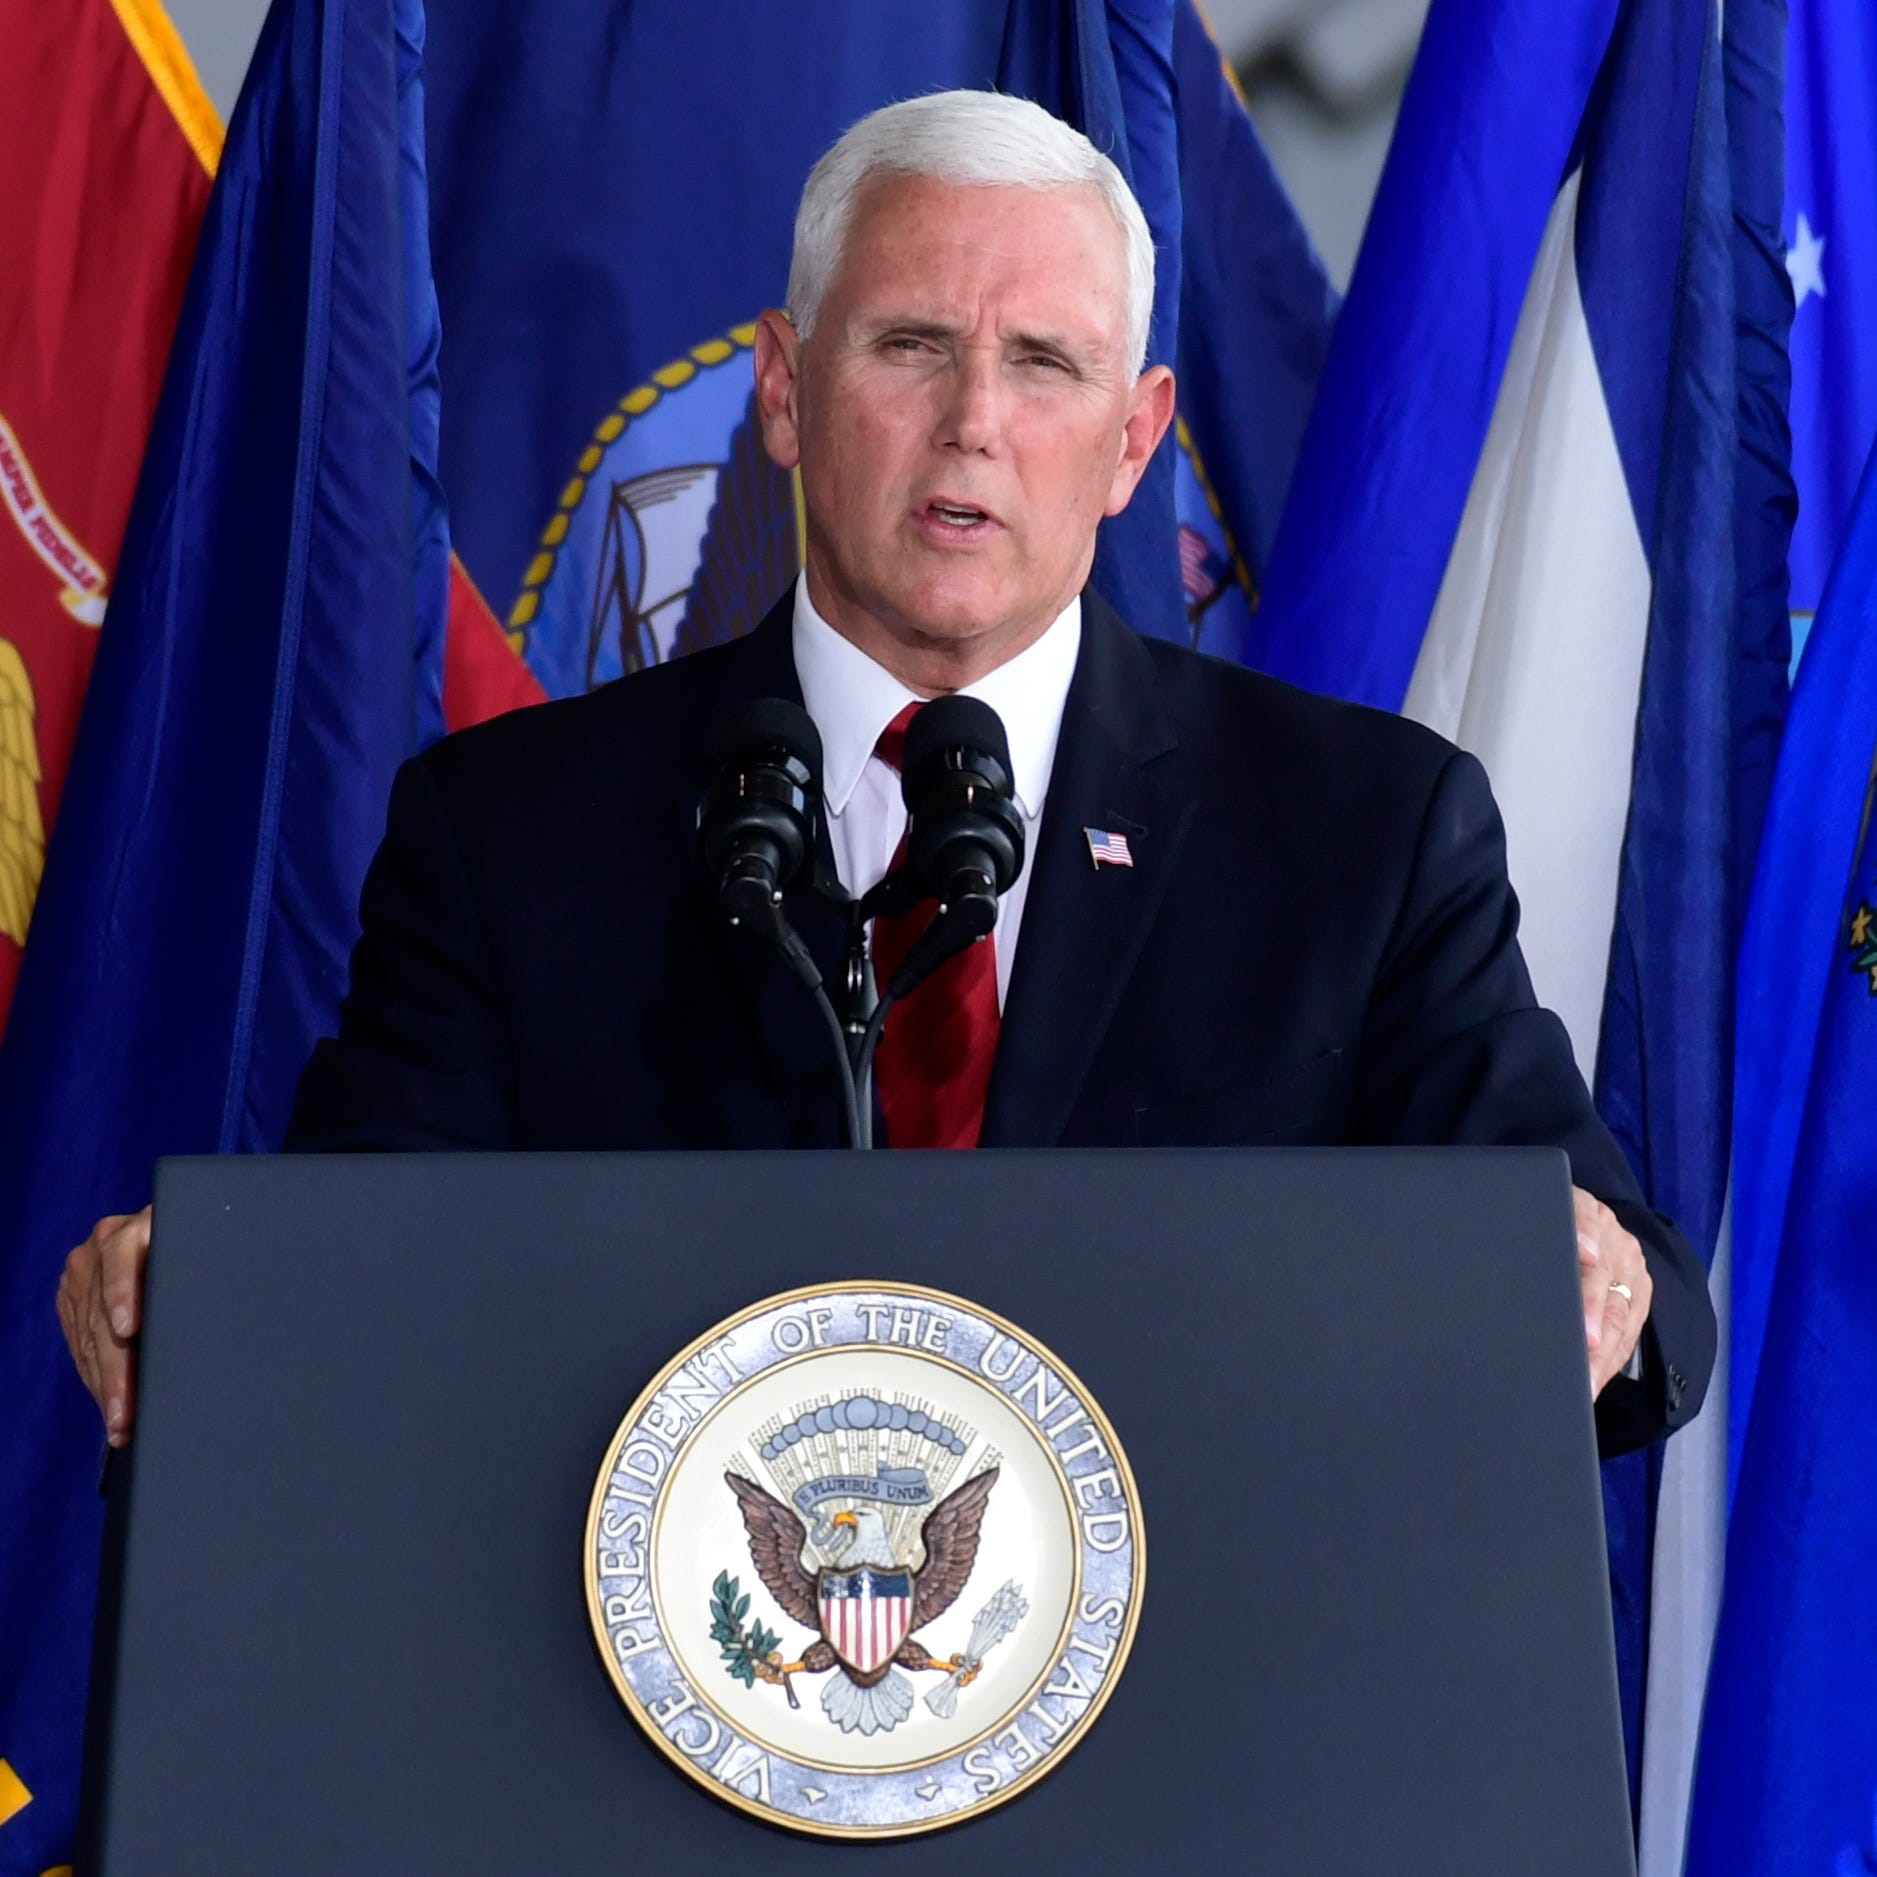 Vice President Mike Pence speaks at a ceremony marking the arrival of the remains believed to be of American service members who fell in the Korean War.